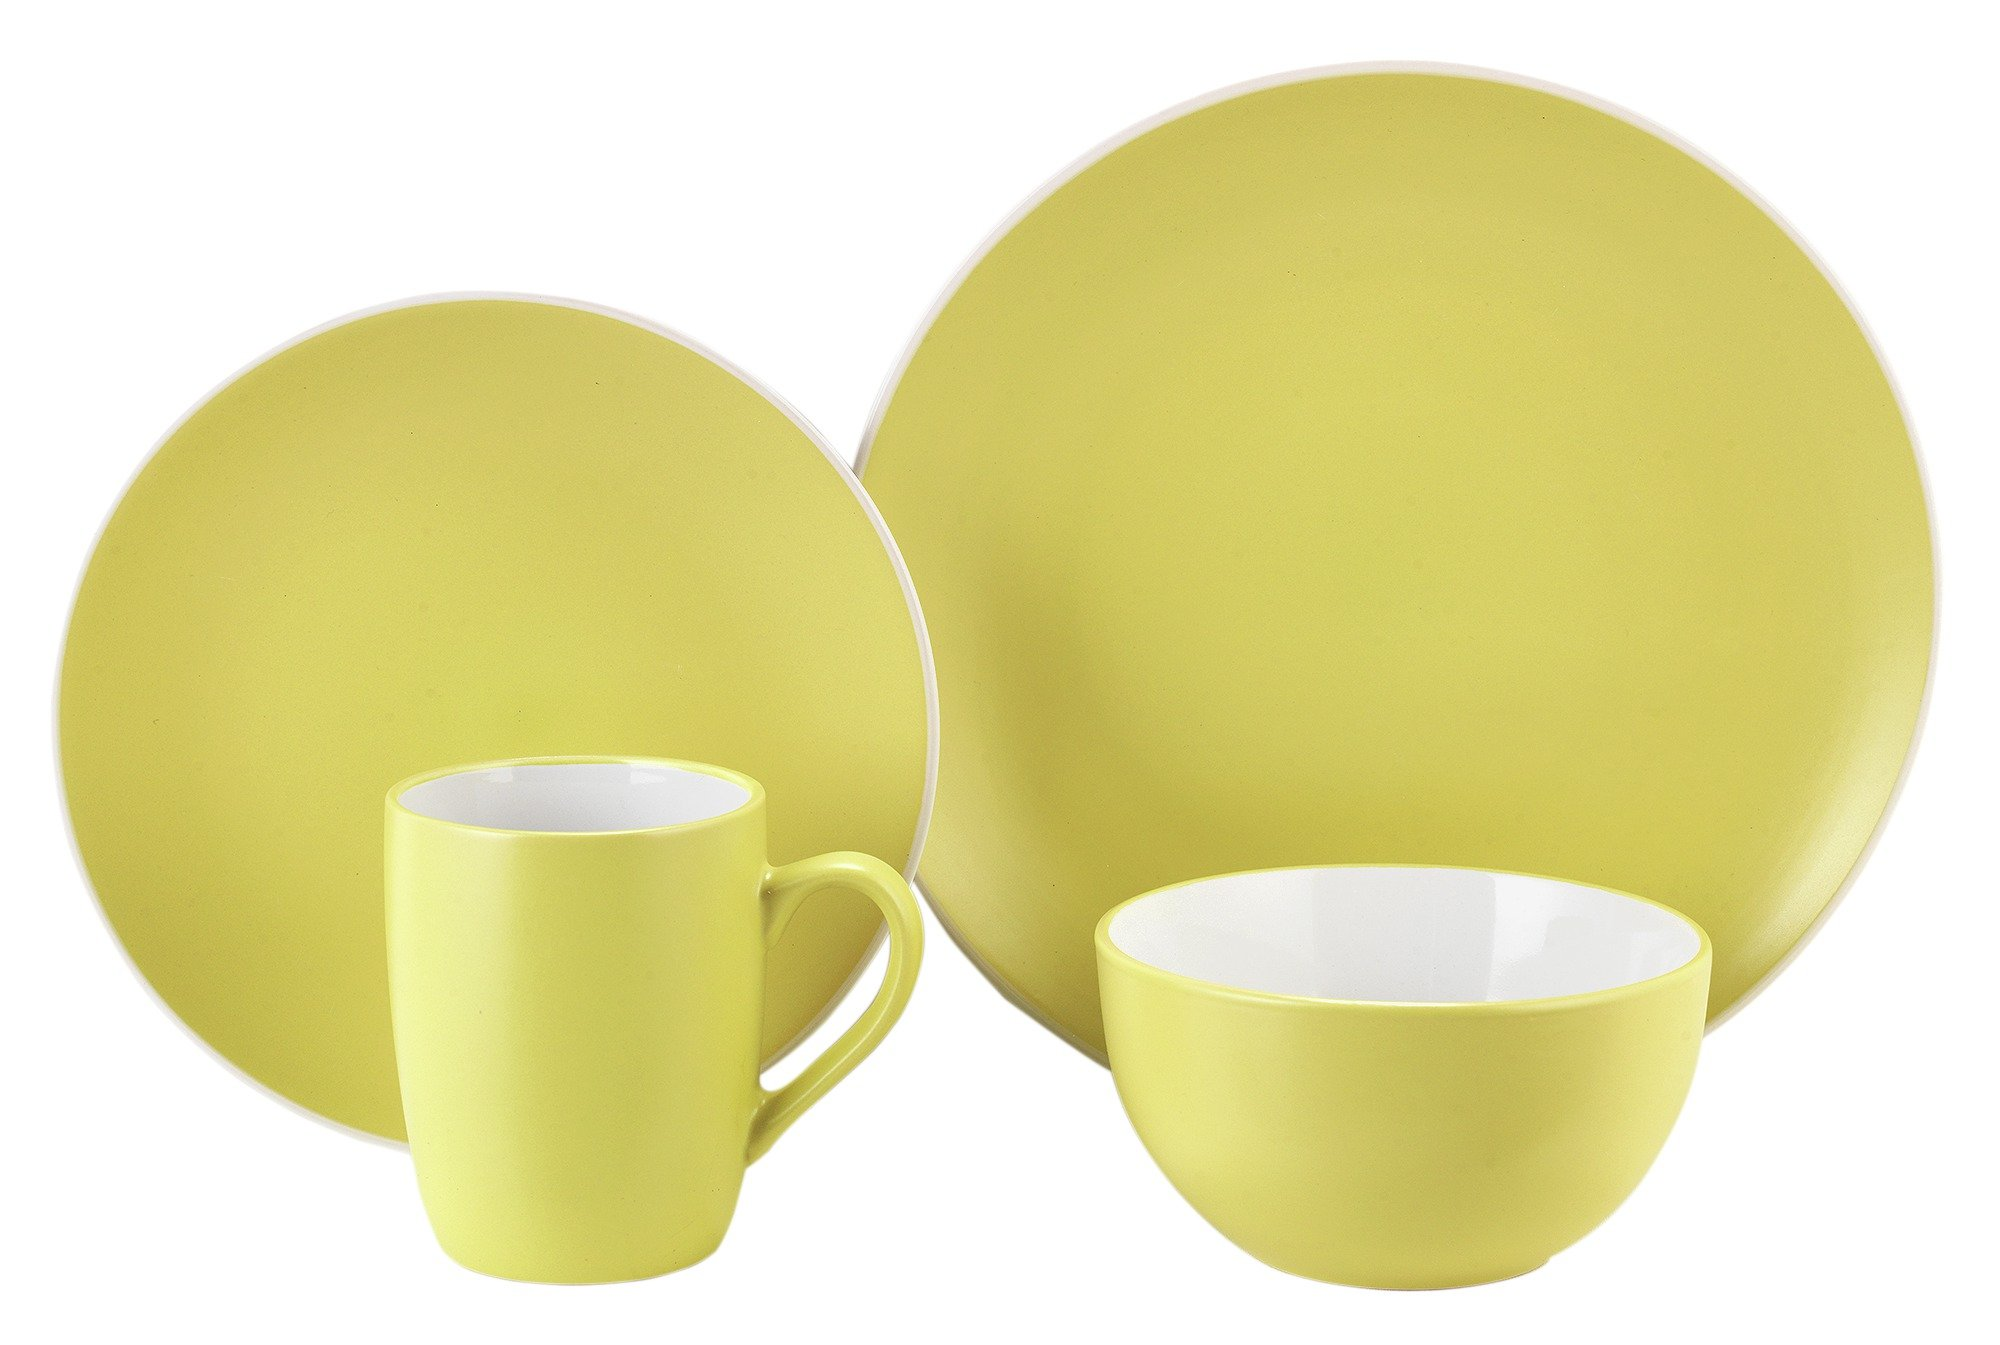 ColourMatch 12 Piece Stoneware Dinner Set - Zest